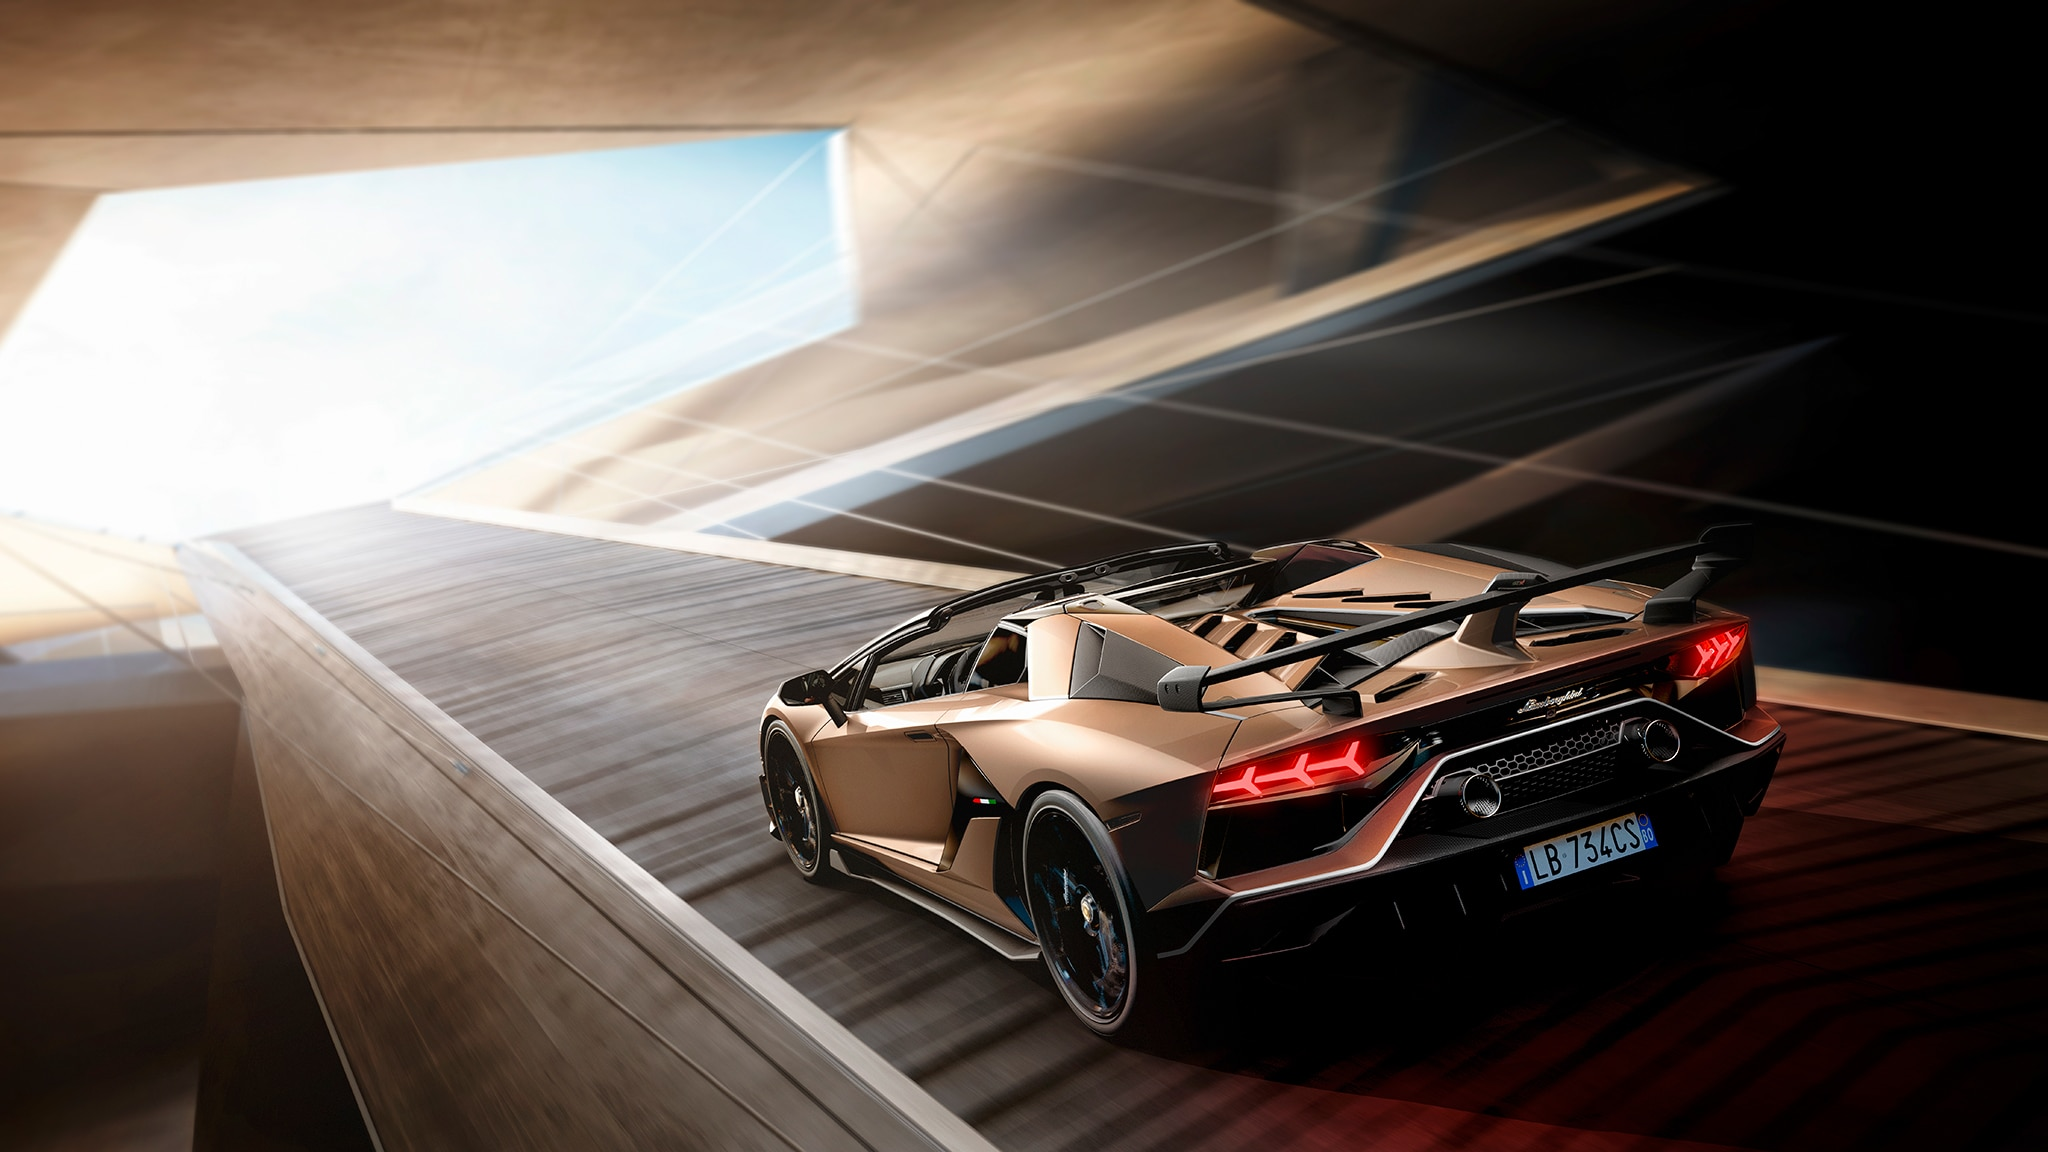 The Lamborghini Aventador Svj Roadster Takes The Roof Off 759 Hp